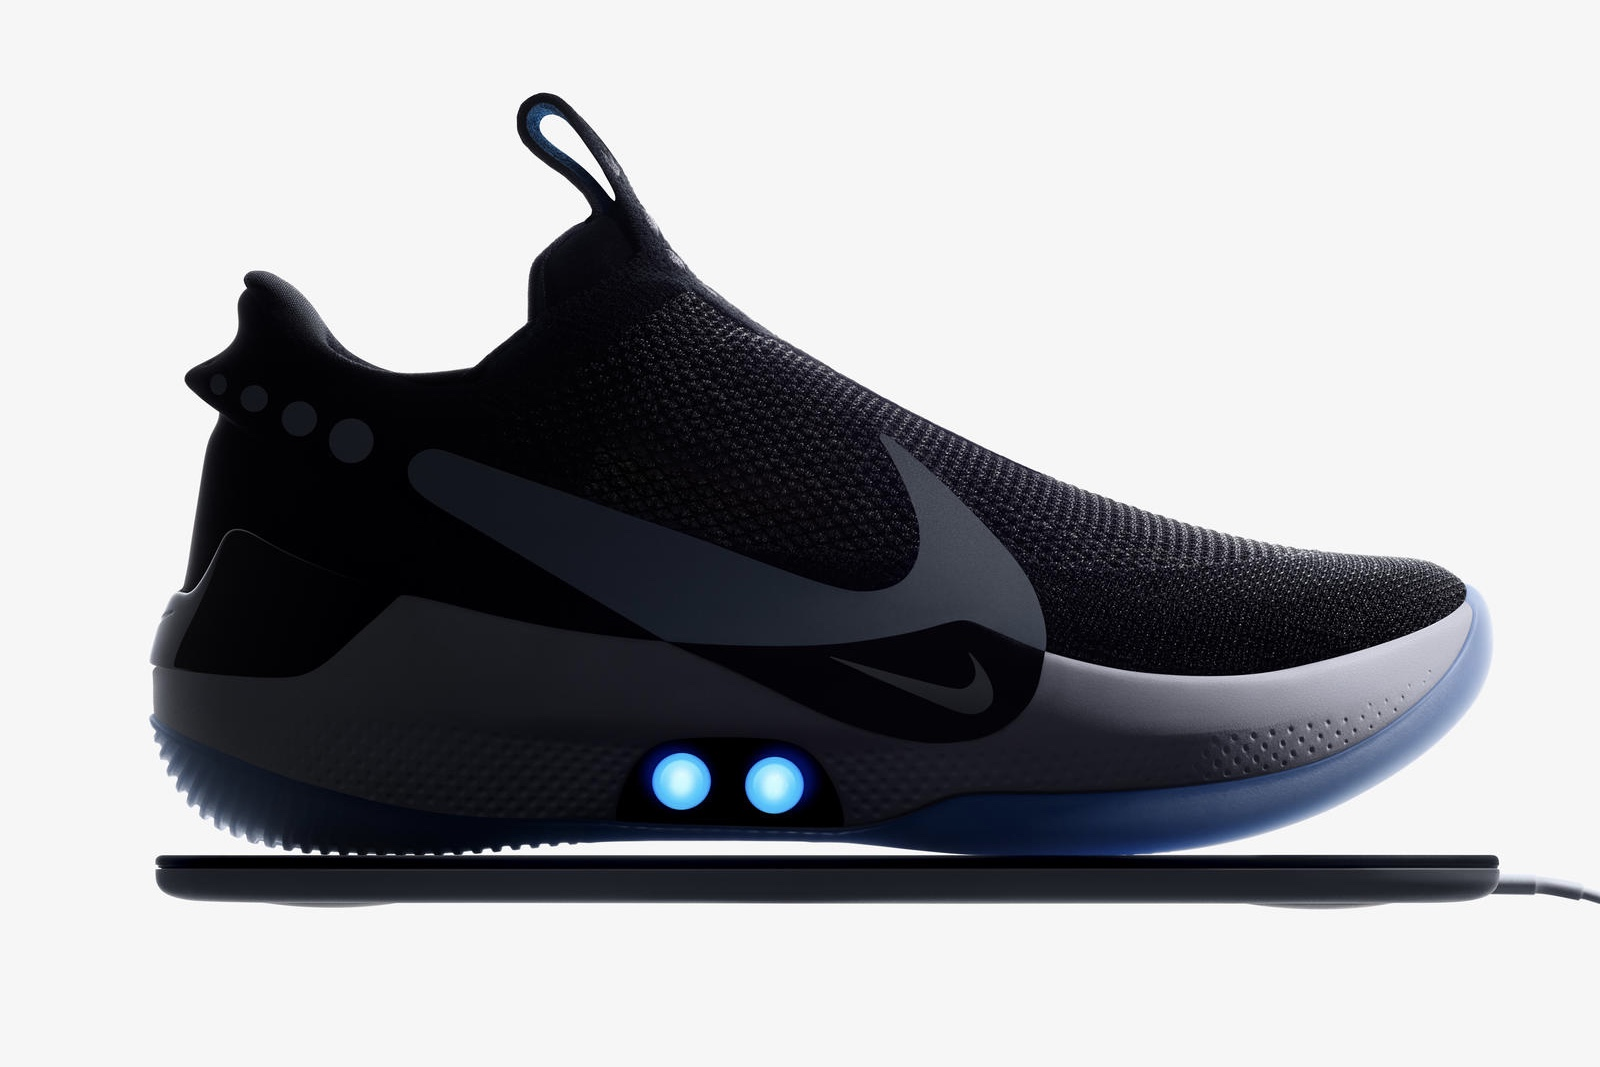 NIKE Now Has A Self-Lacing Sneaker